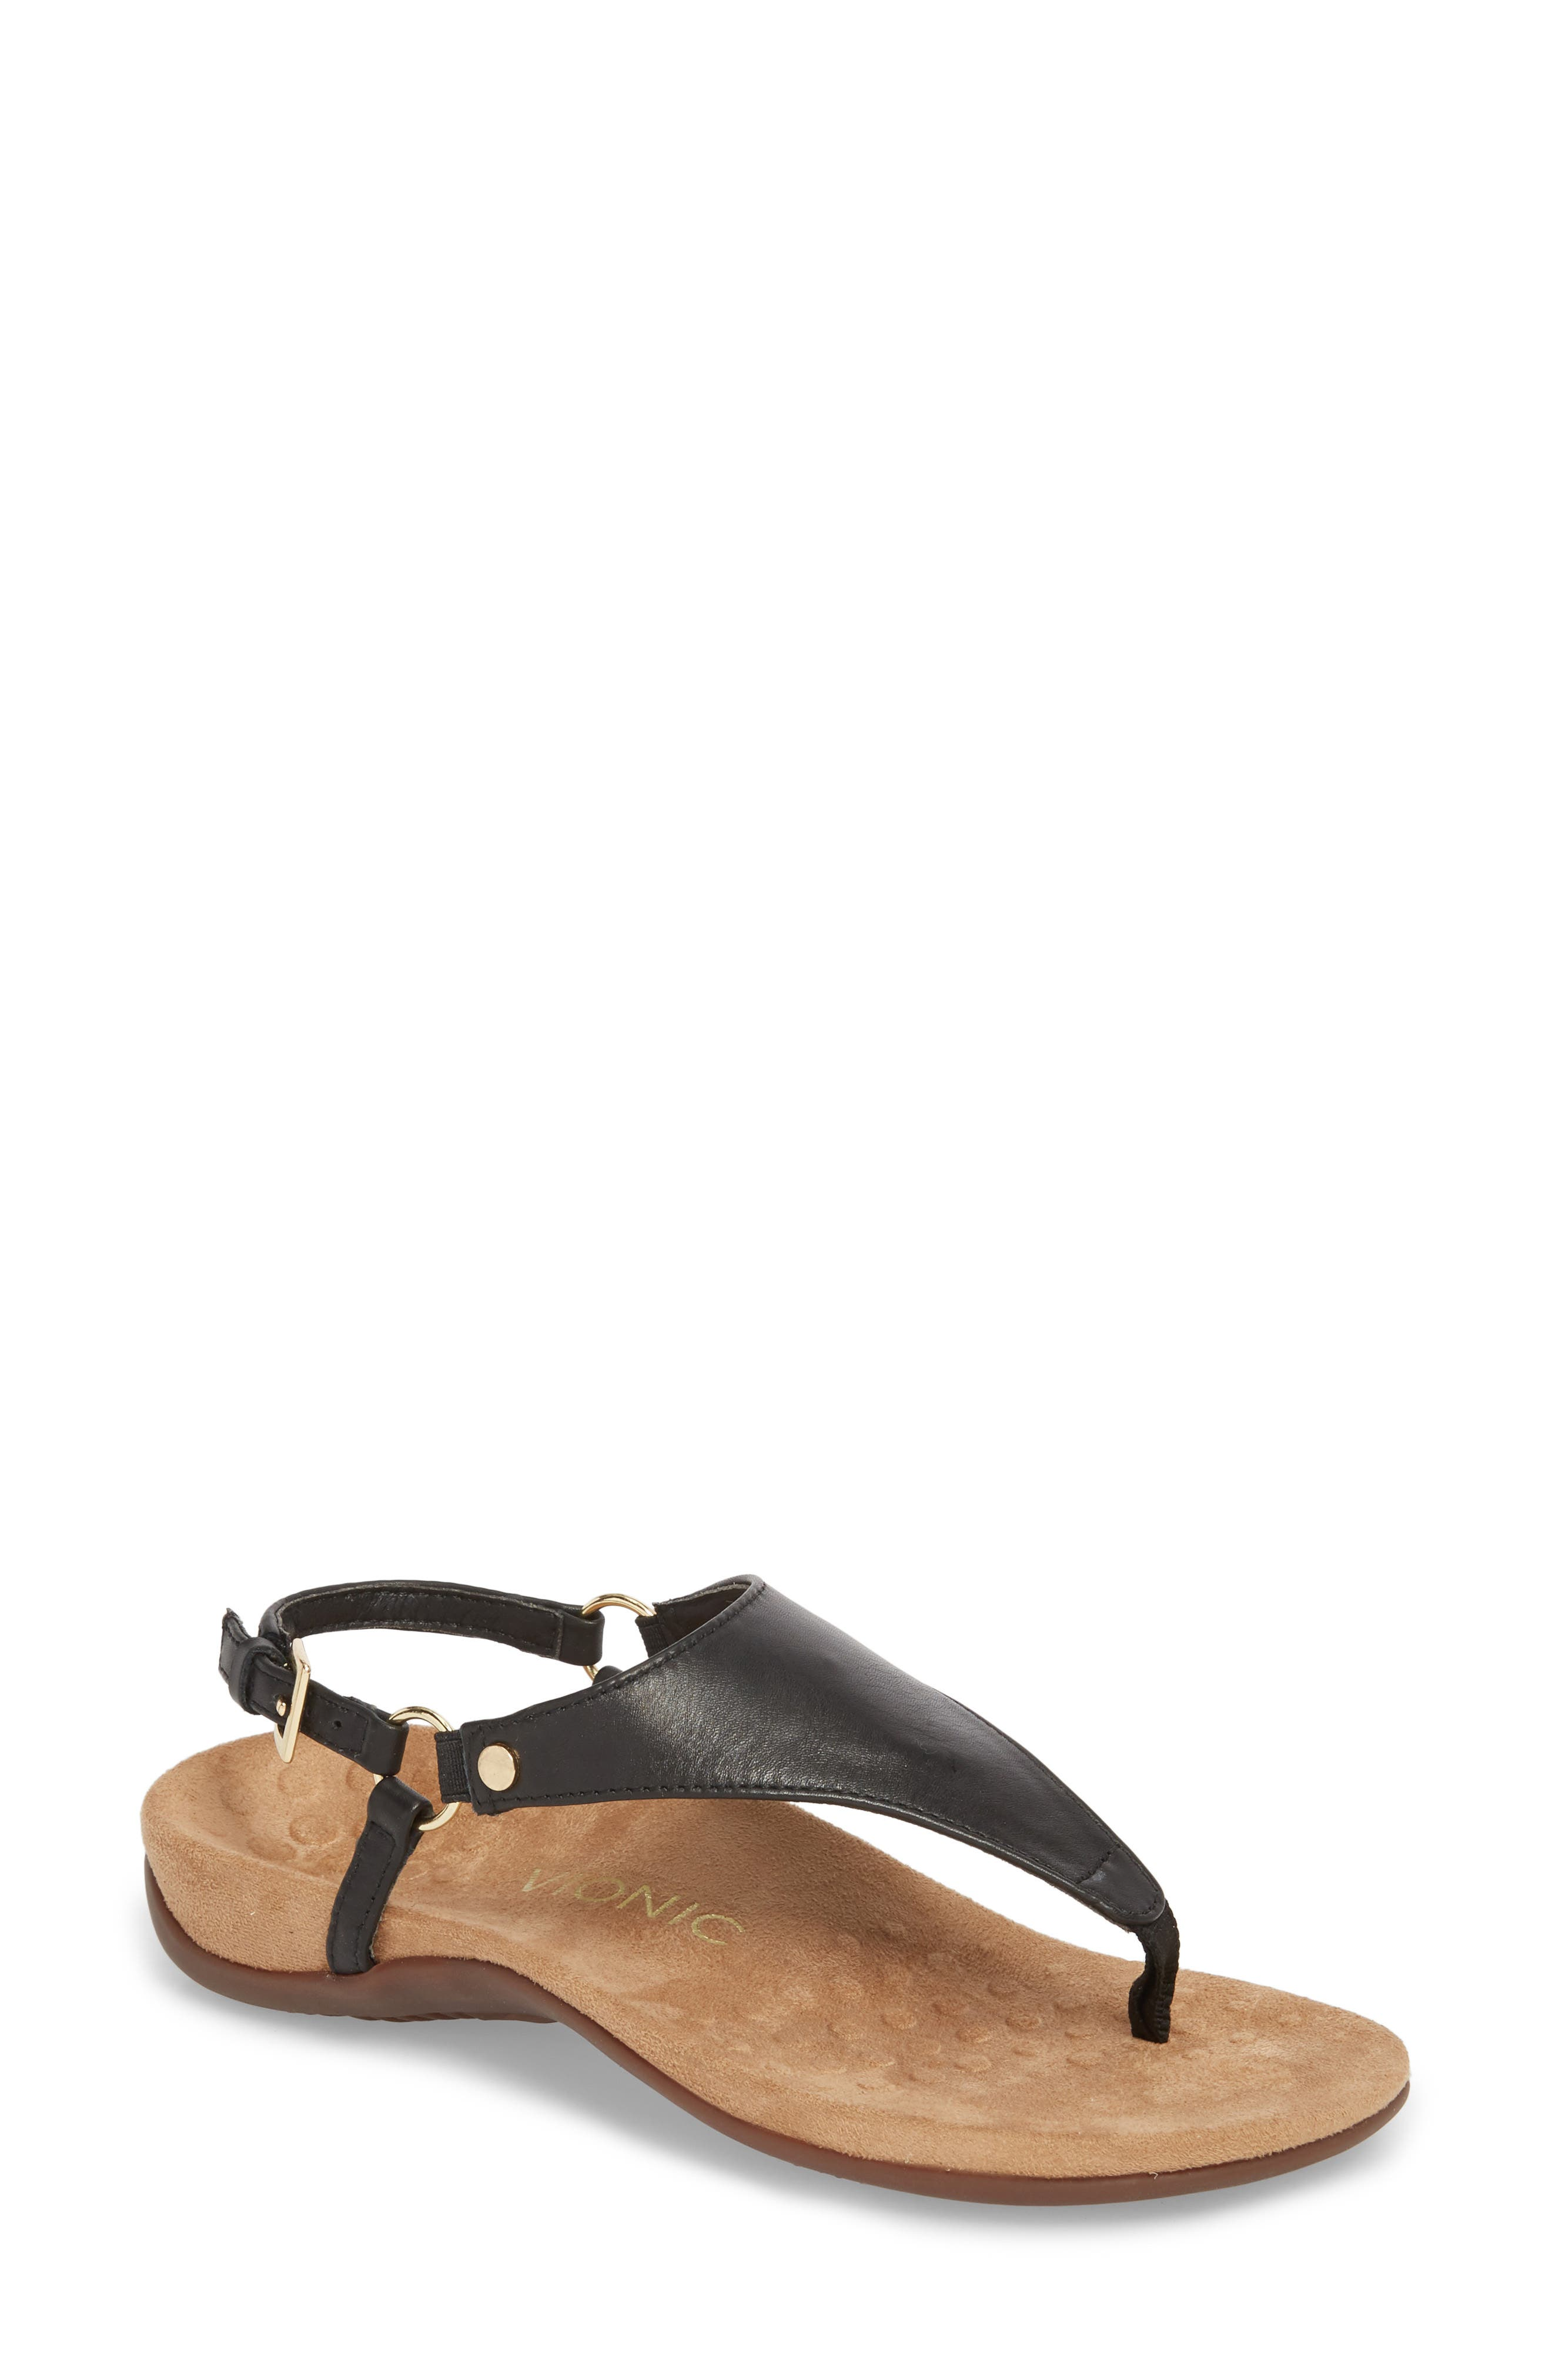 Kirra Orthaheel<sup>®</sup> Sandal,                         Main,                         color, BLACK LEATHER